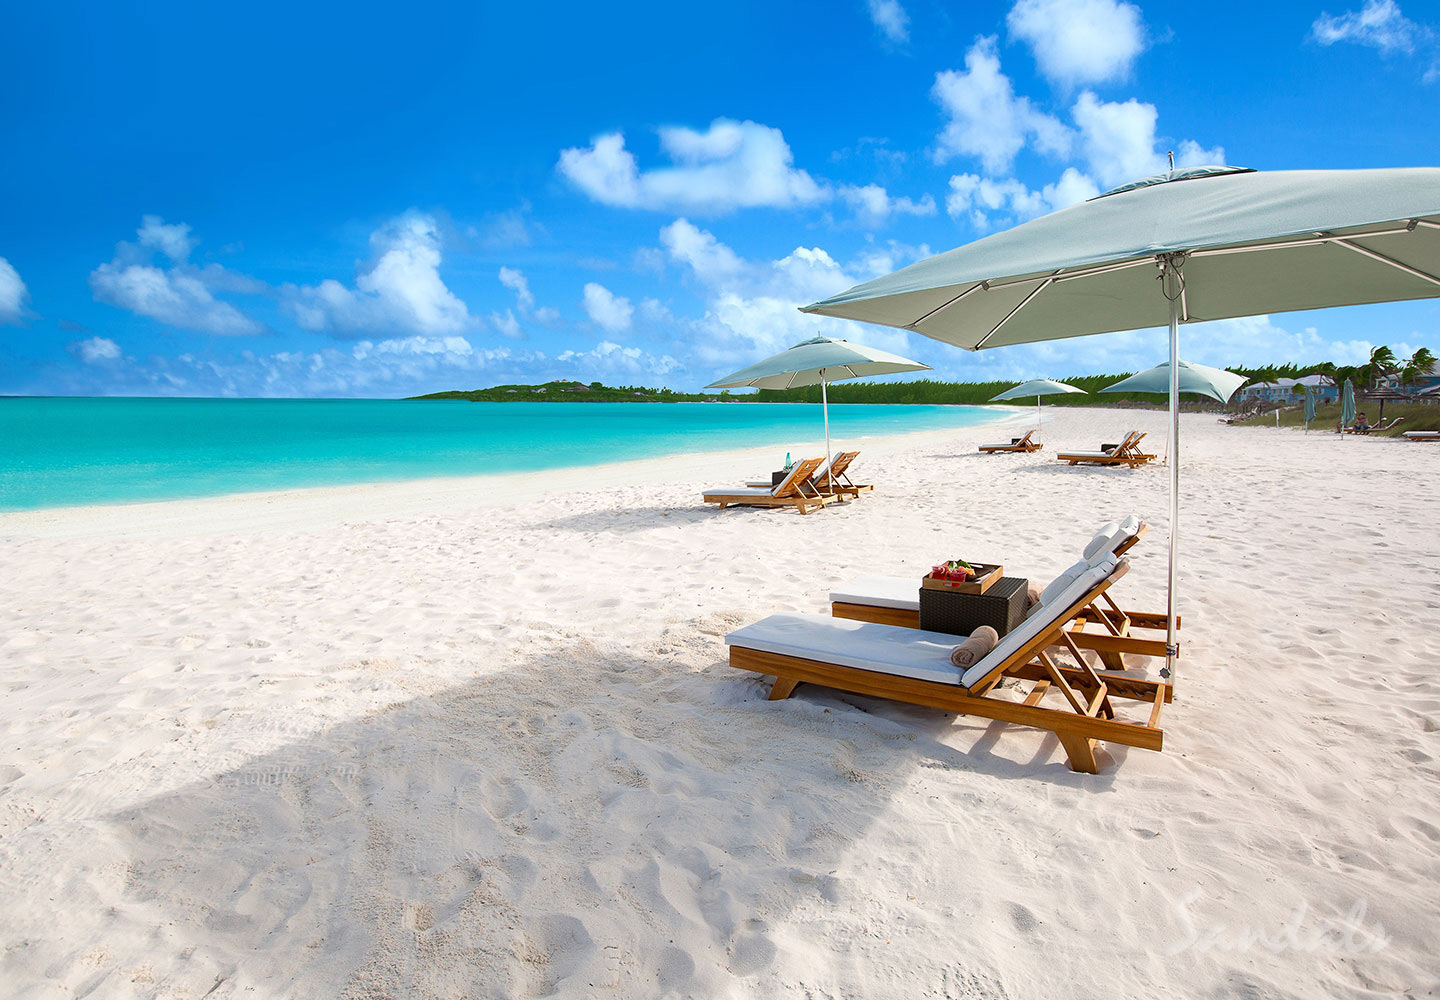 Travel Agency All-Inclusive Resort Sandals Emerald Bay 115